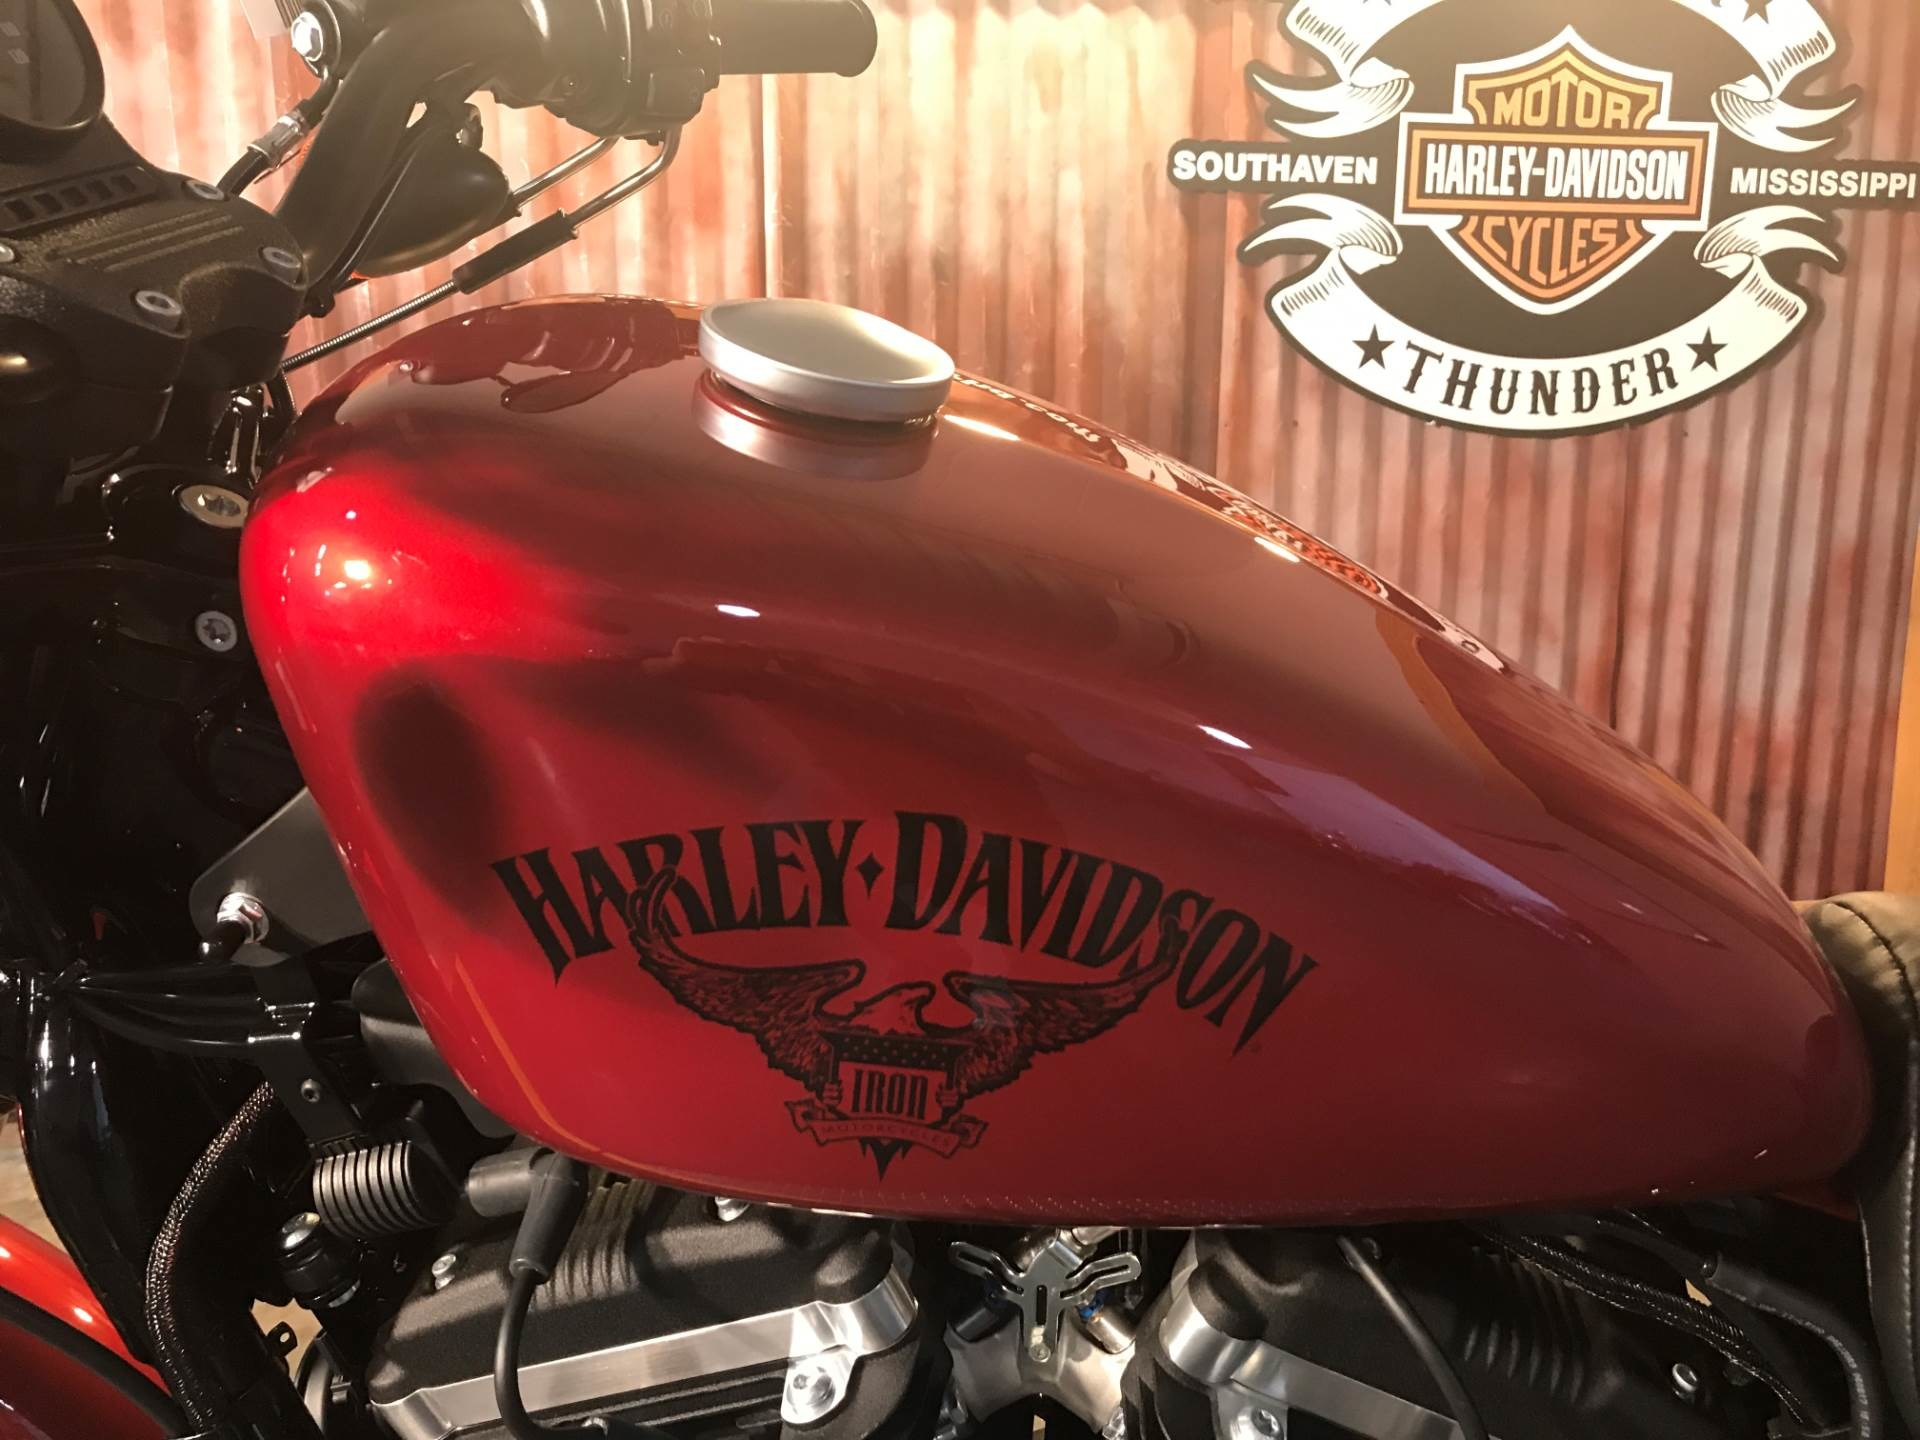 1920x1440 2018 Harley-Davidson Iron 883™ in Southaven, Mississippi